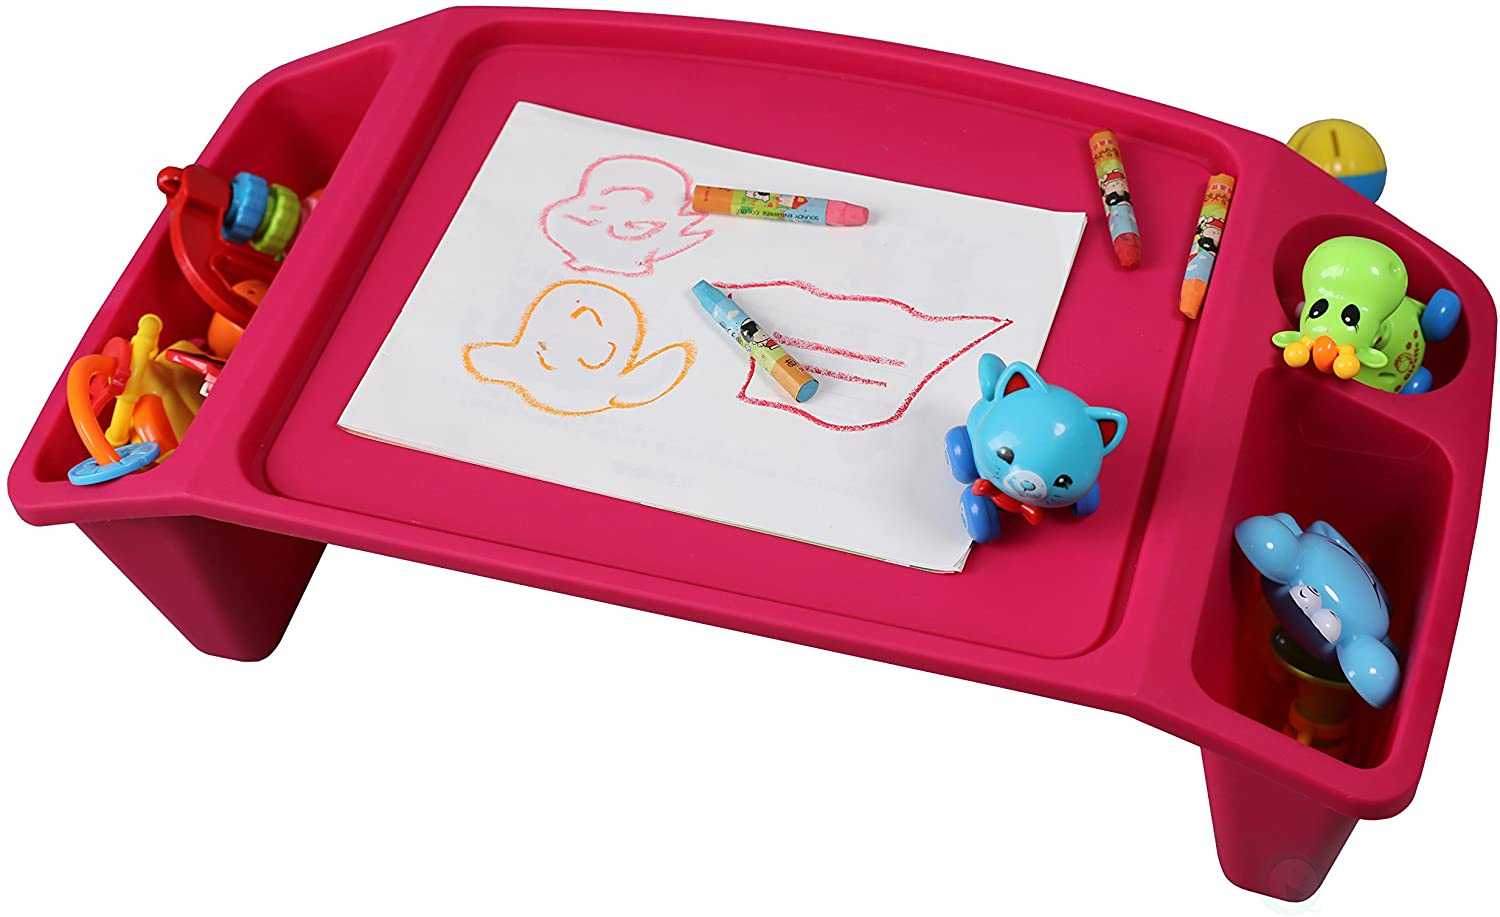 kids lap desk, bed tray table, best bed tray table